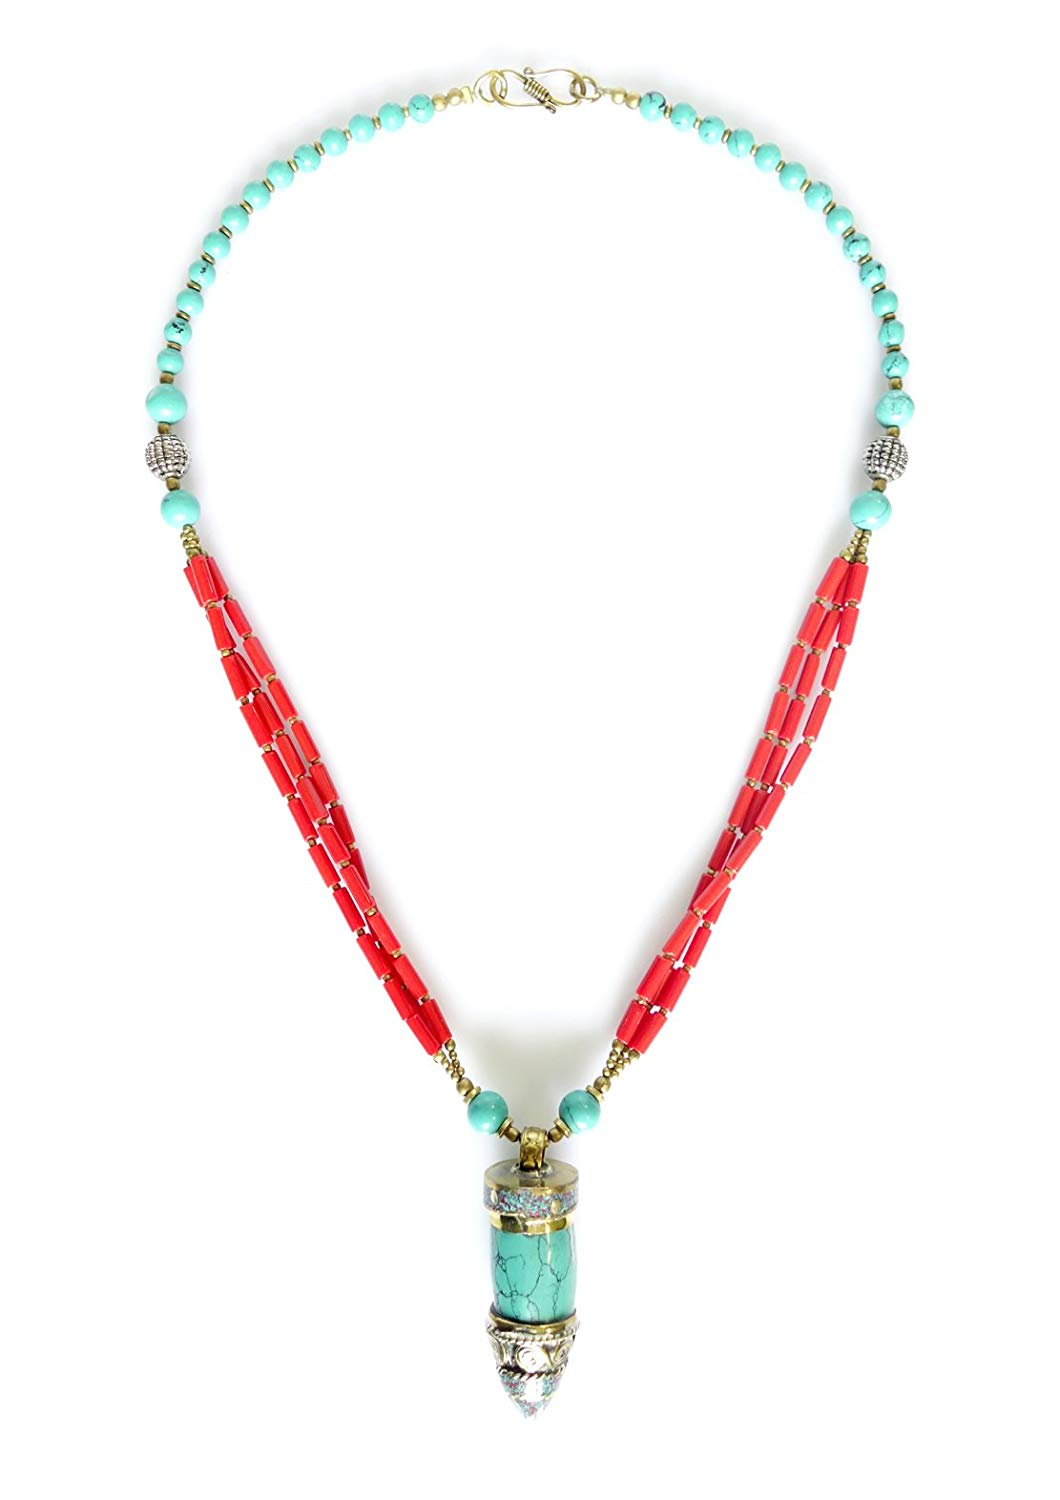 Tibetan Silver ELEGANT TURQUOISE AND CORAL GEMSTONE MULTI STRAND BEADED FASHION PENDANT NECKLACE BUDDHIST BOHEMIAN ETHNIC TRIBAL DESIGNER UNIQUE NECKLACE FOR WOMAN